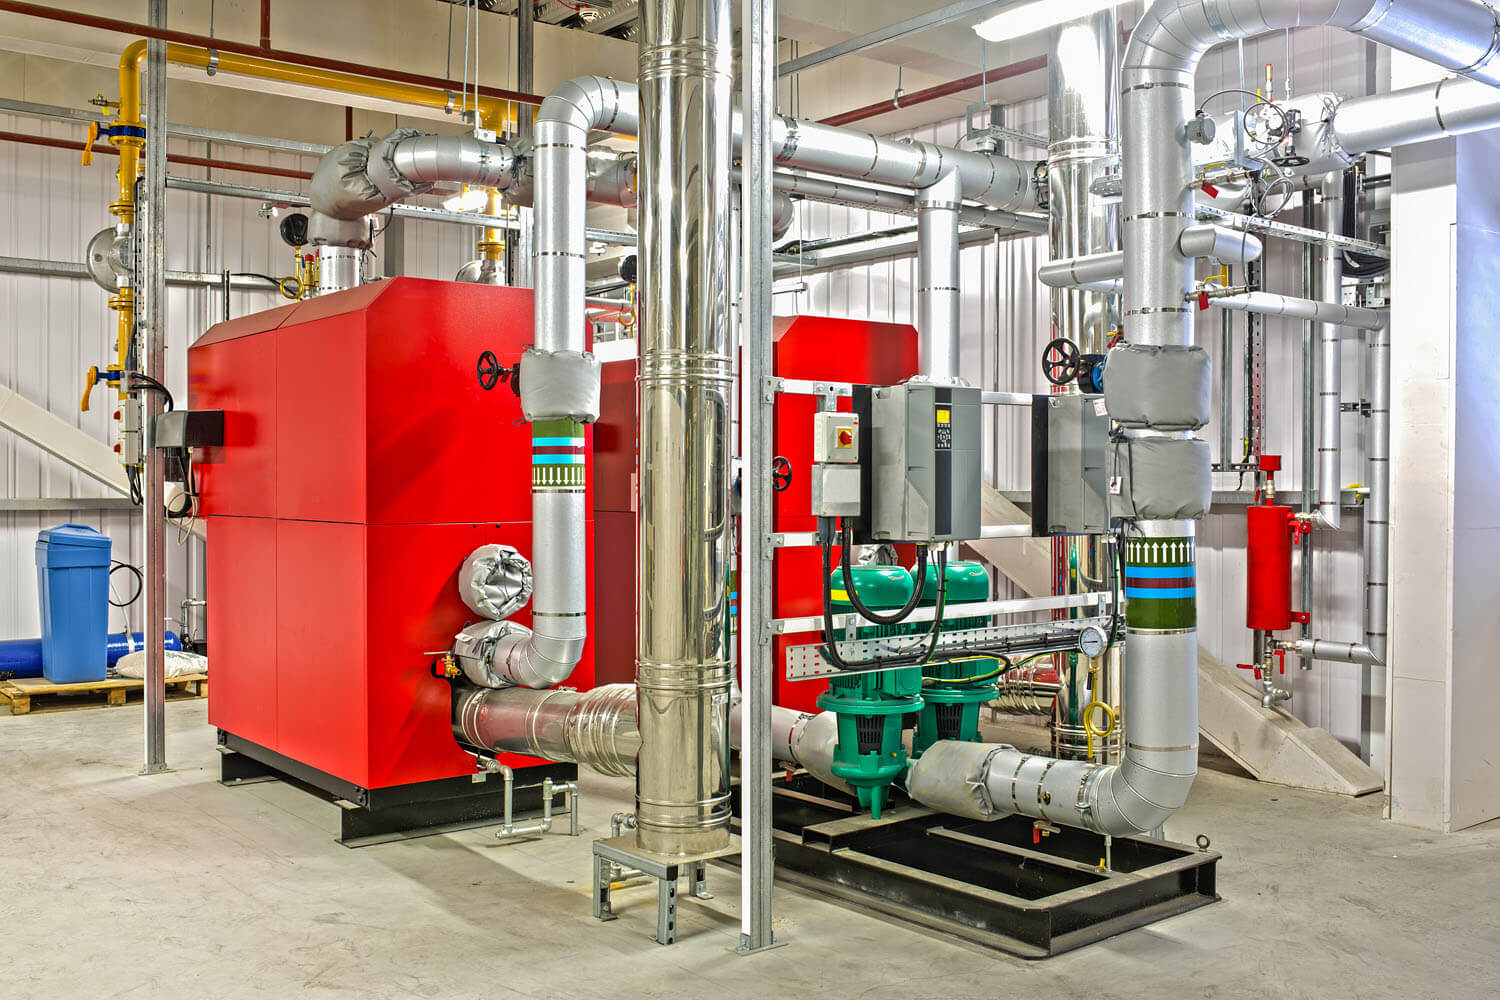 Commercial Boiler Servicing London